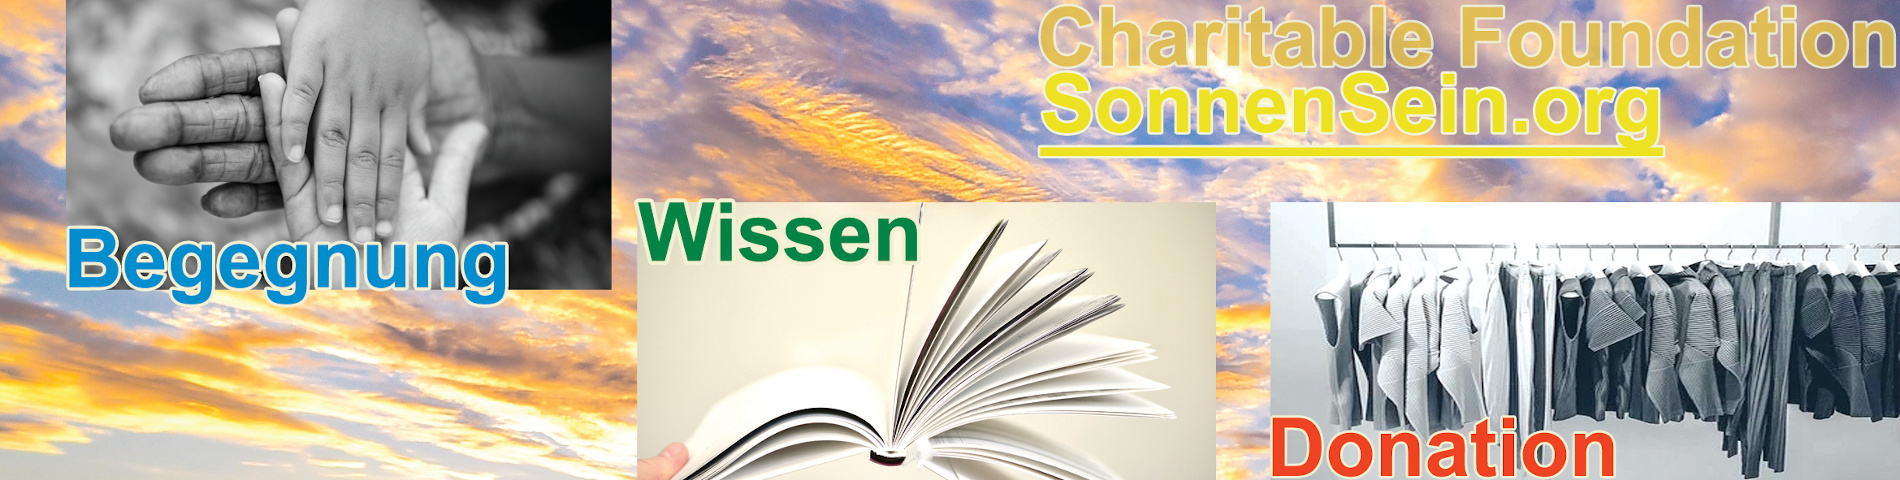 SonnenSein Charitable Foundation